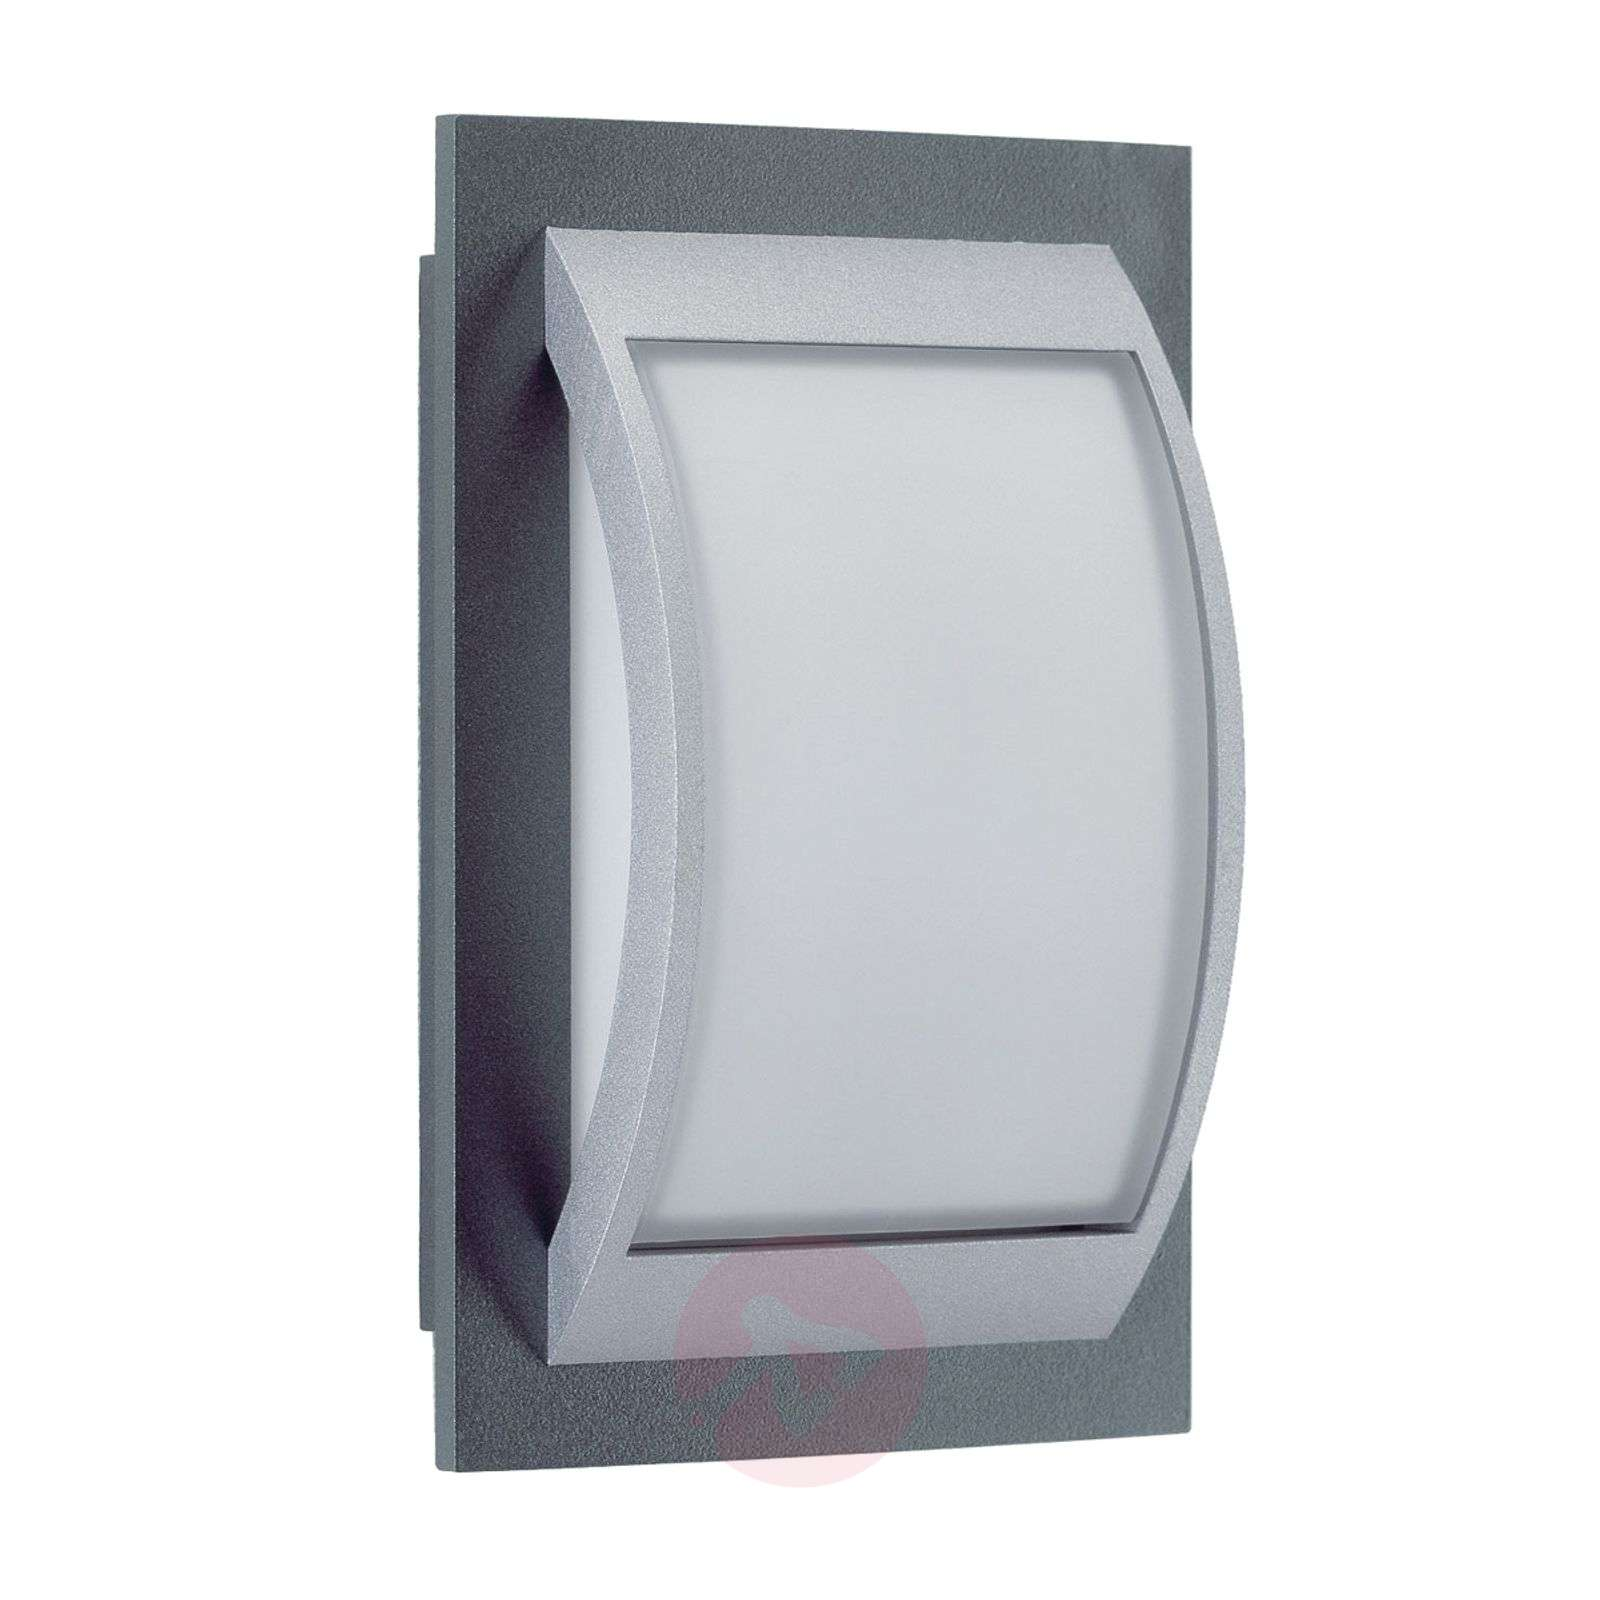 Robust outdoor wall light Marcia with opal glass-4000023X-01